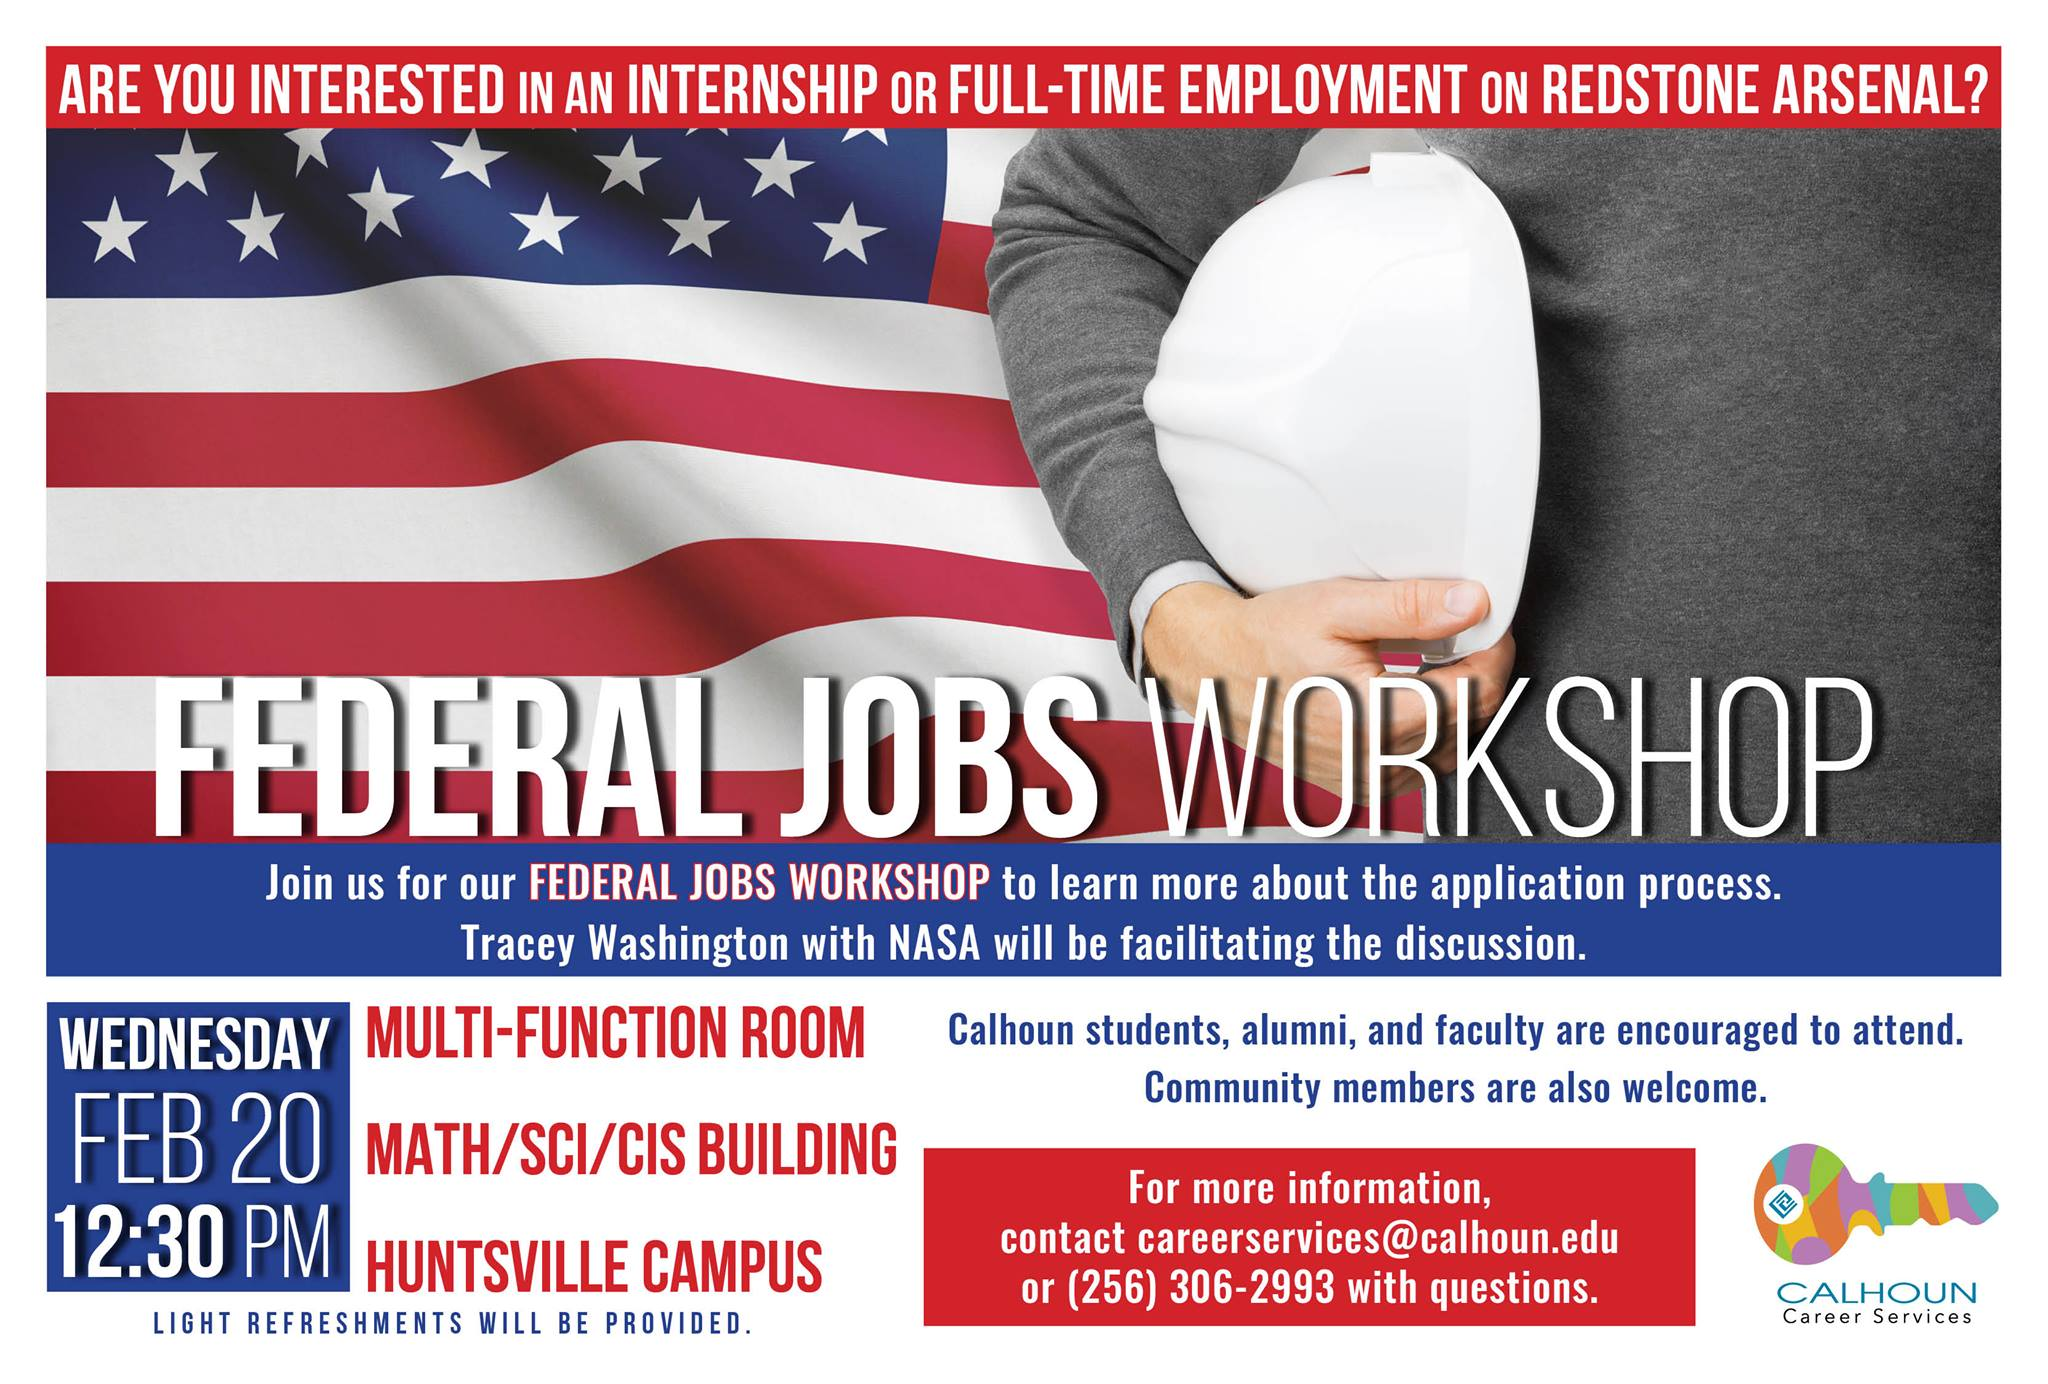 Are you interested in an internship or full-time employment on Redstone Arsenal? Join us for our FEDERAL JOBS WORKSHOP to learn more about the application process. Tracey Washington with NASA will be facilitating the discussion. Calhoun students, alumni, and faculty are encouraged to attend. community members are also welcome. For more information, contact careerservices@calhoun.edu or (256) 306-2993 with questions.